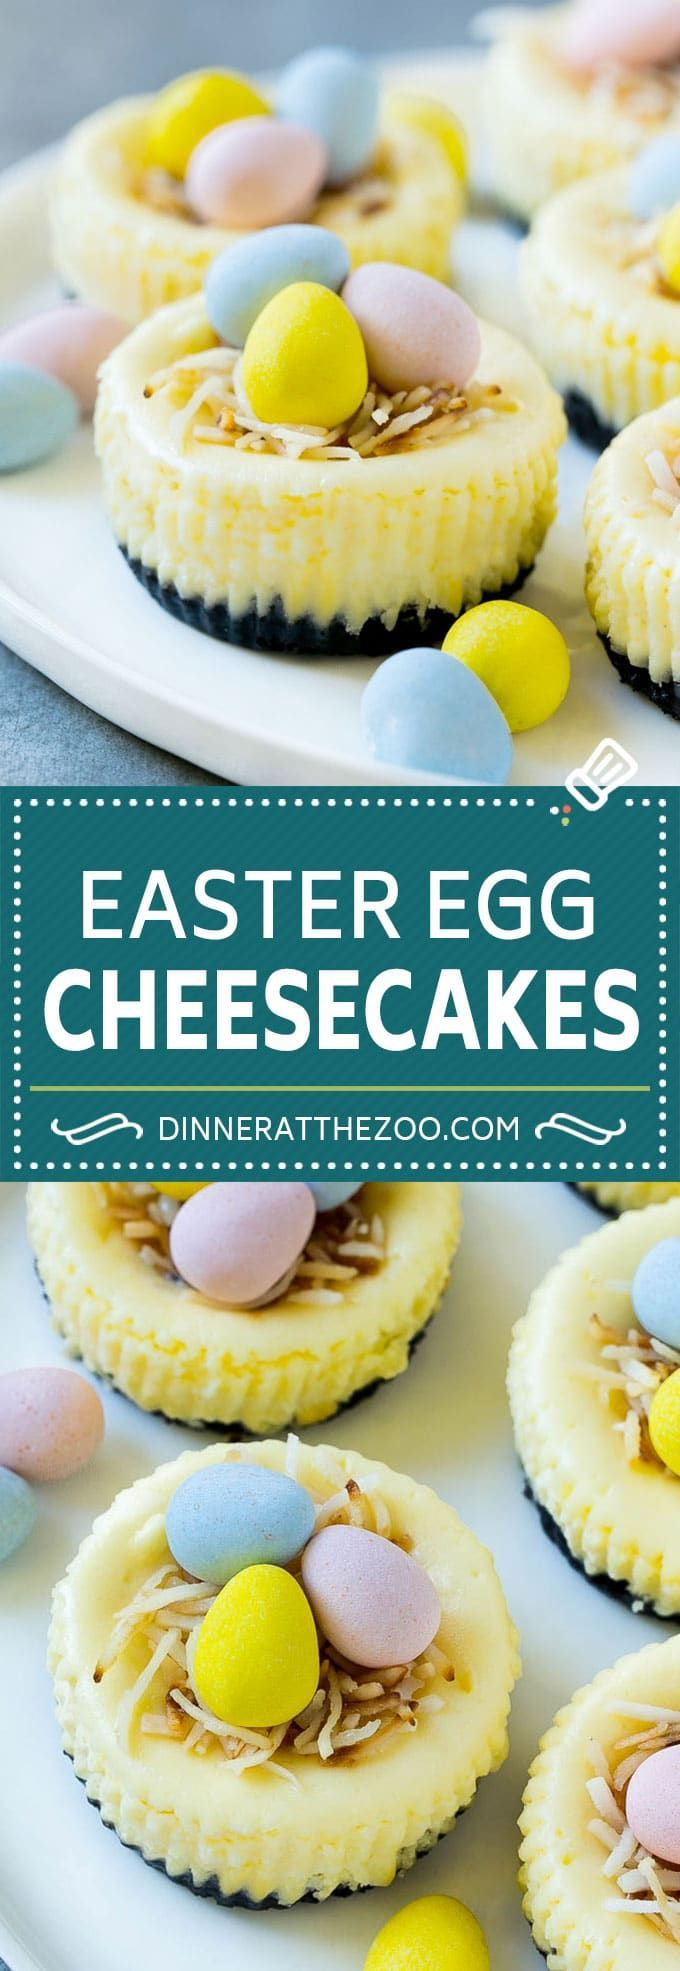 Easter Egg Cheesecakes Recipe | Mini Cheesecakes | Easter Dessert Recipe | Birds Nest Cheesecake | Easter Cheesecake